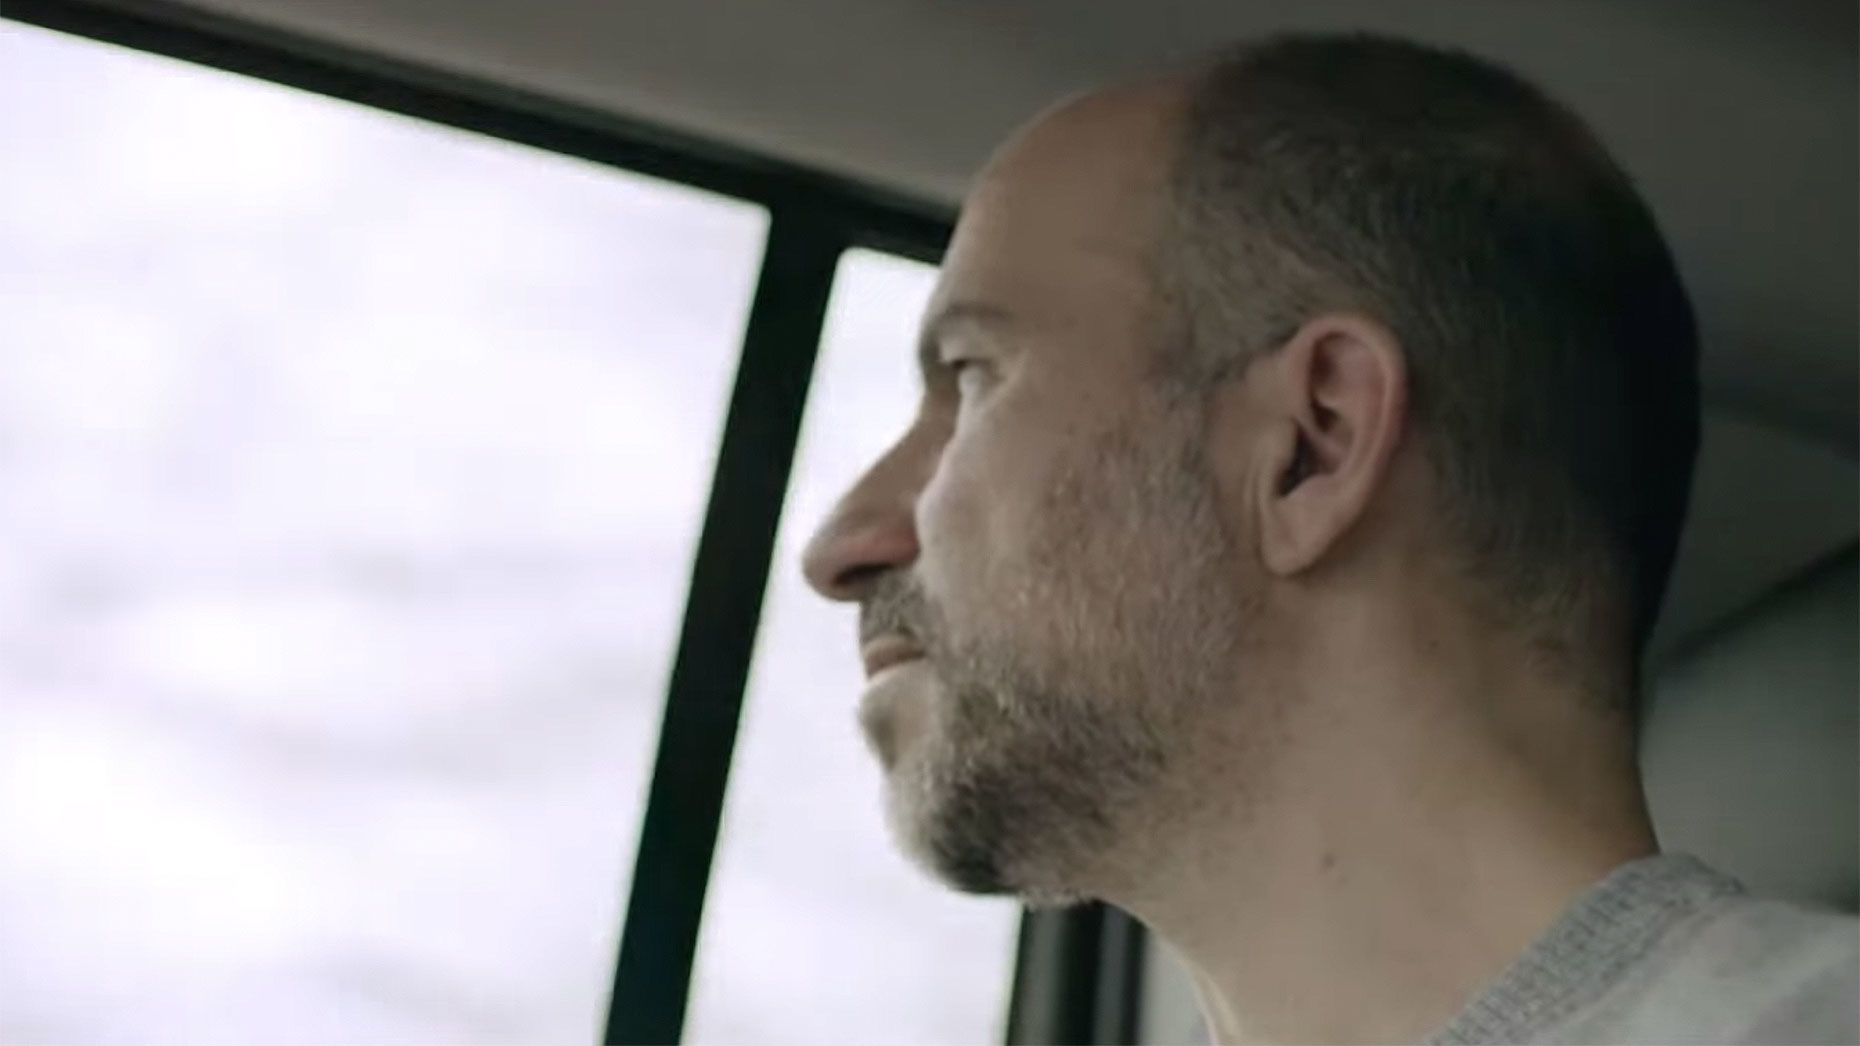 Uber CEO Dara Khosrowshahi, appearing in one of the company's new ads.